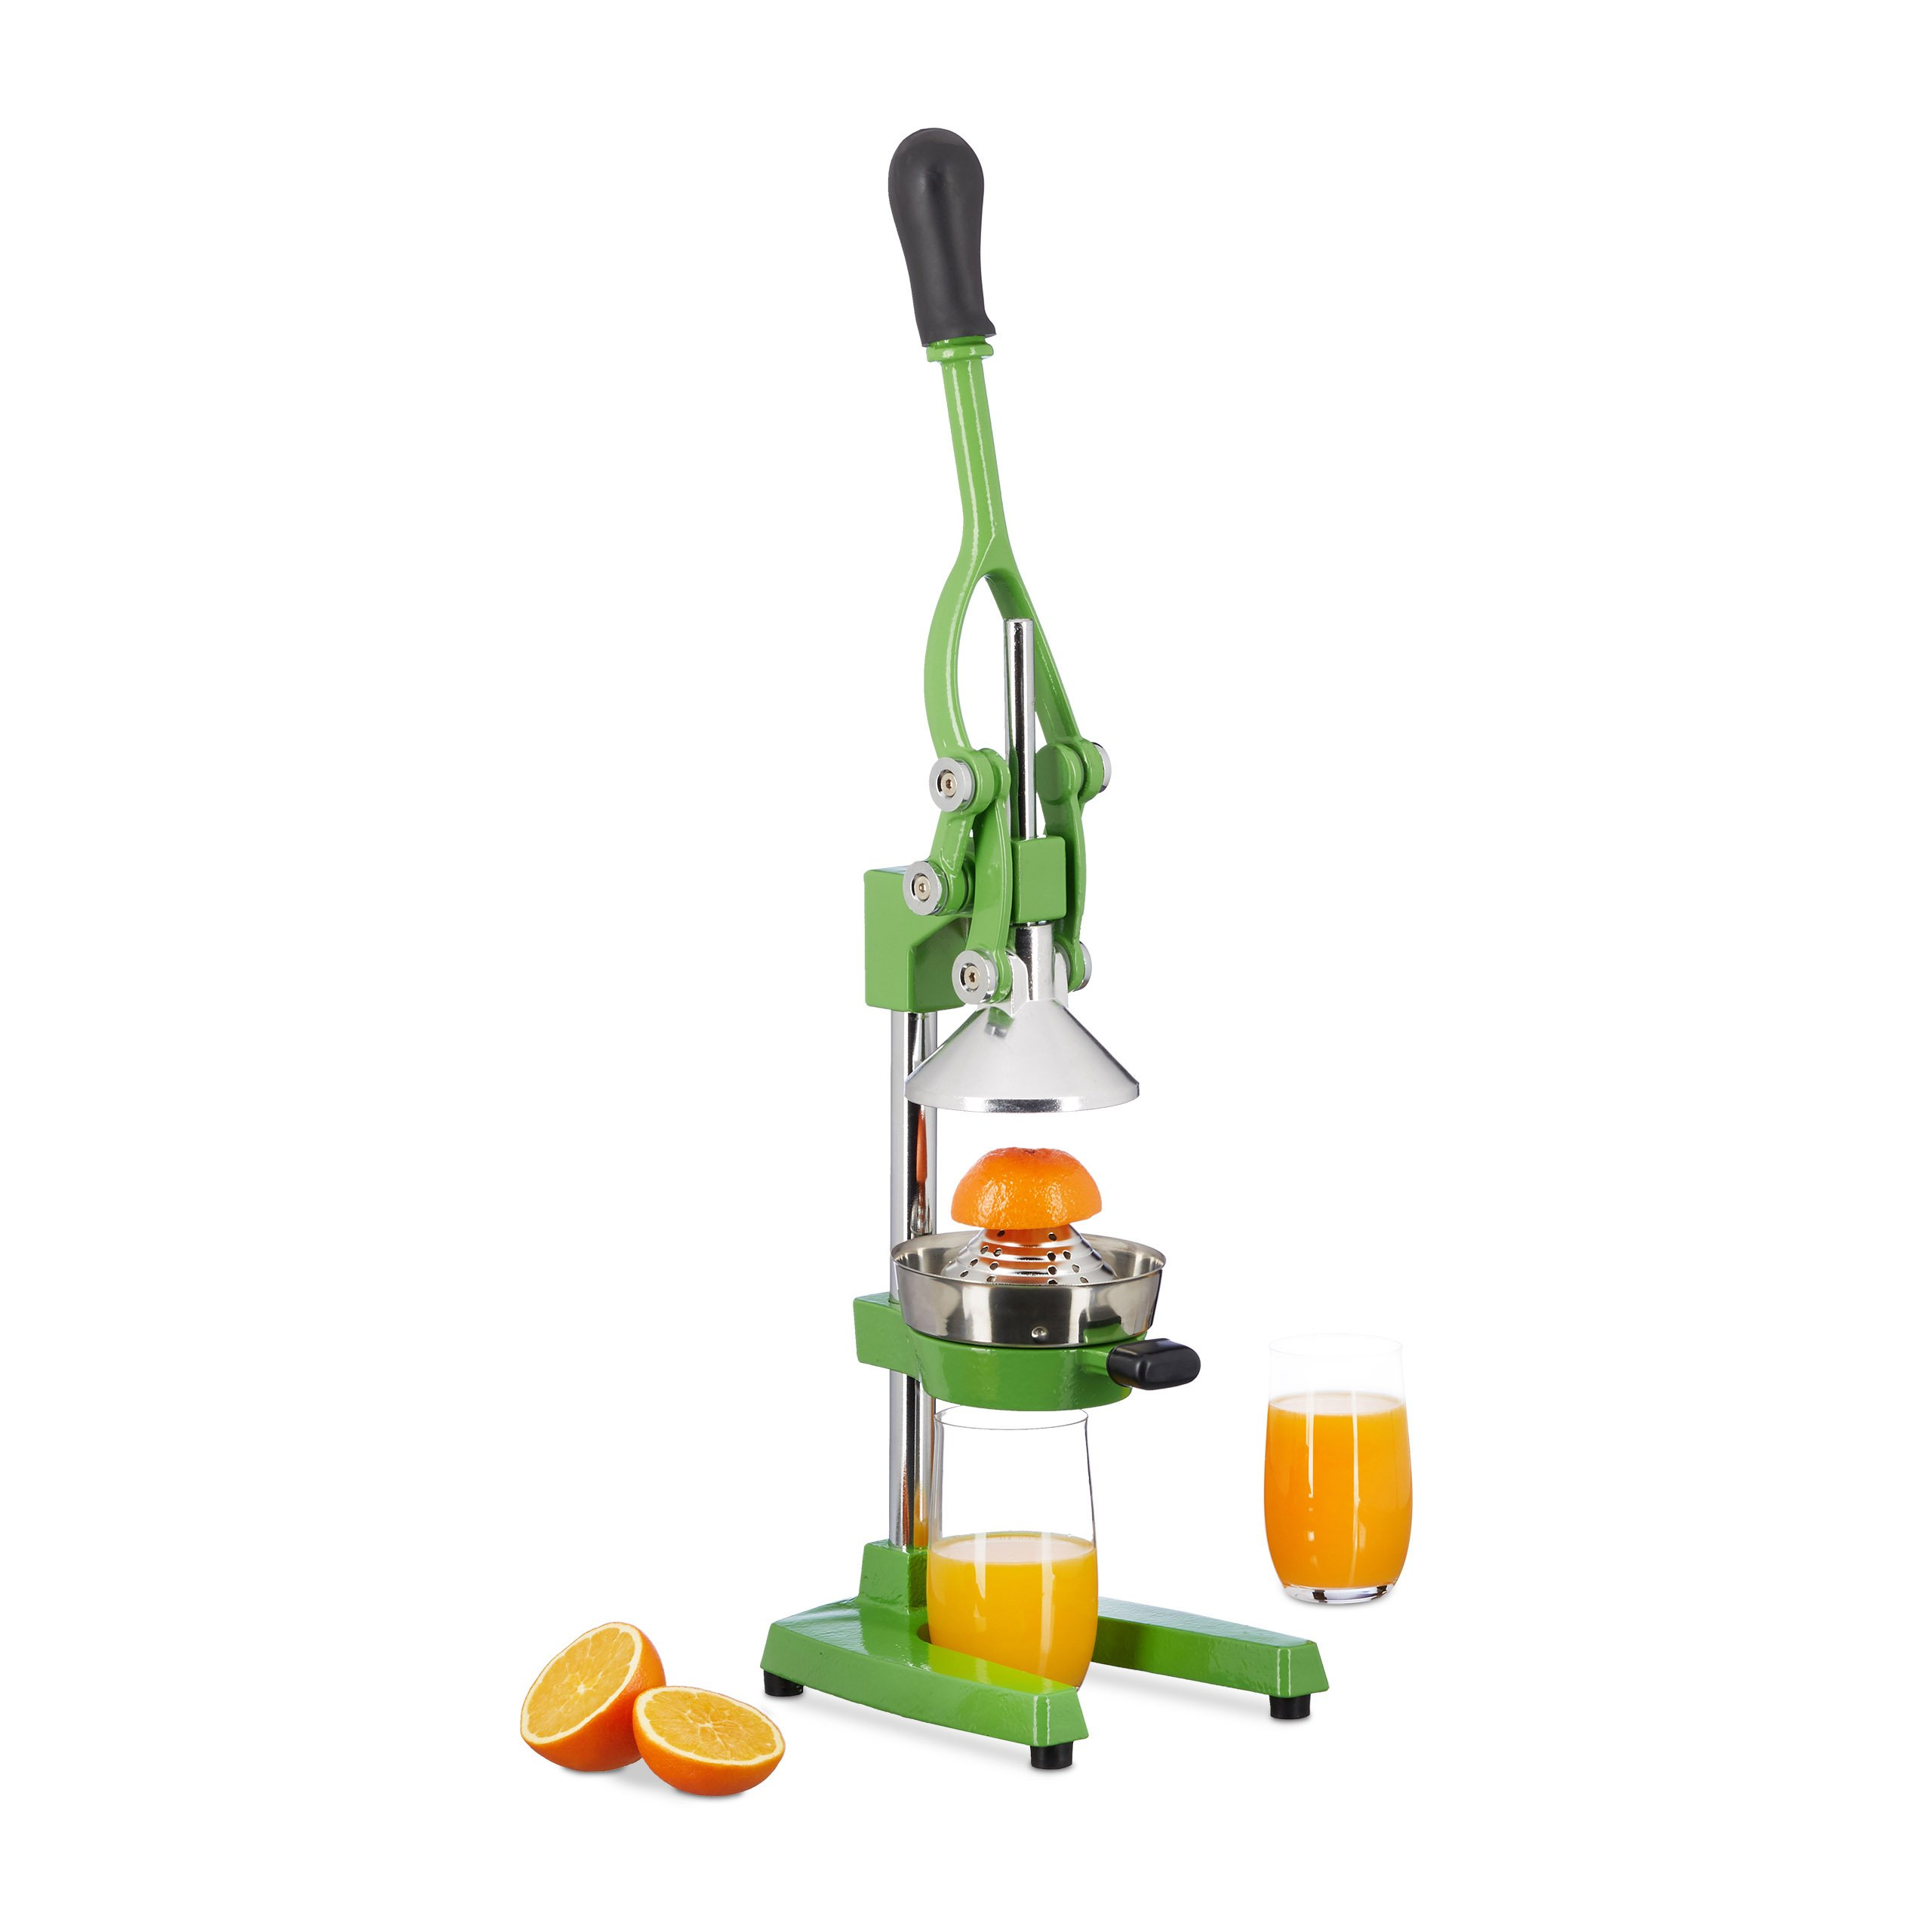 Relaxdays Manual Iron and Stainless Steel Juicer, Citrus Press for Oranges, Professional Lever Zester, Green